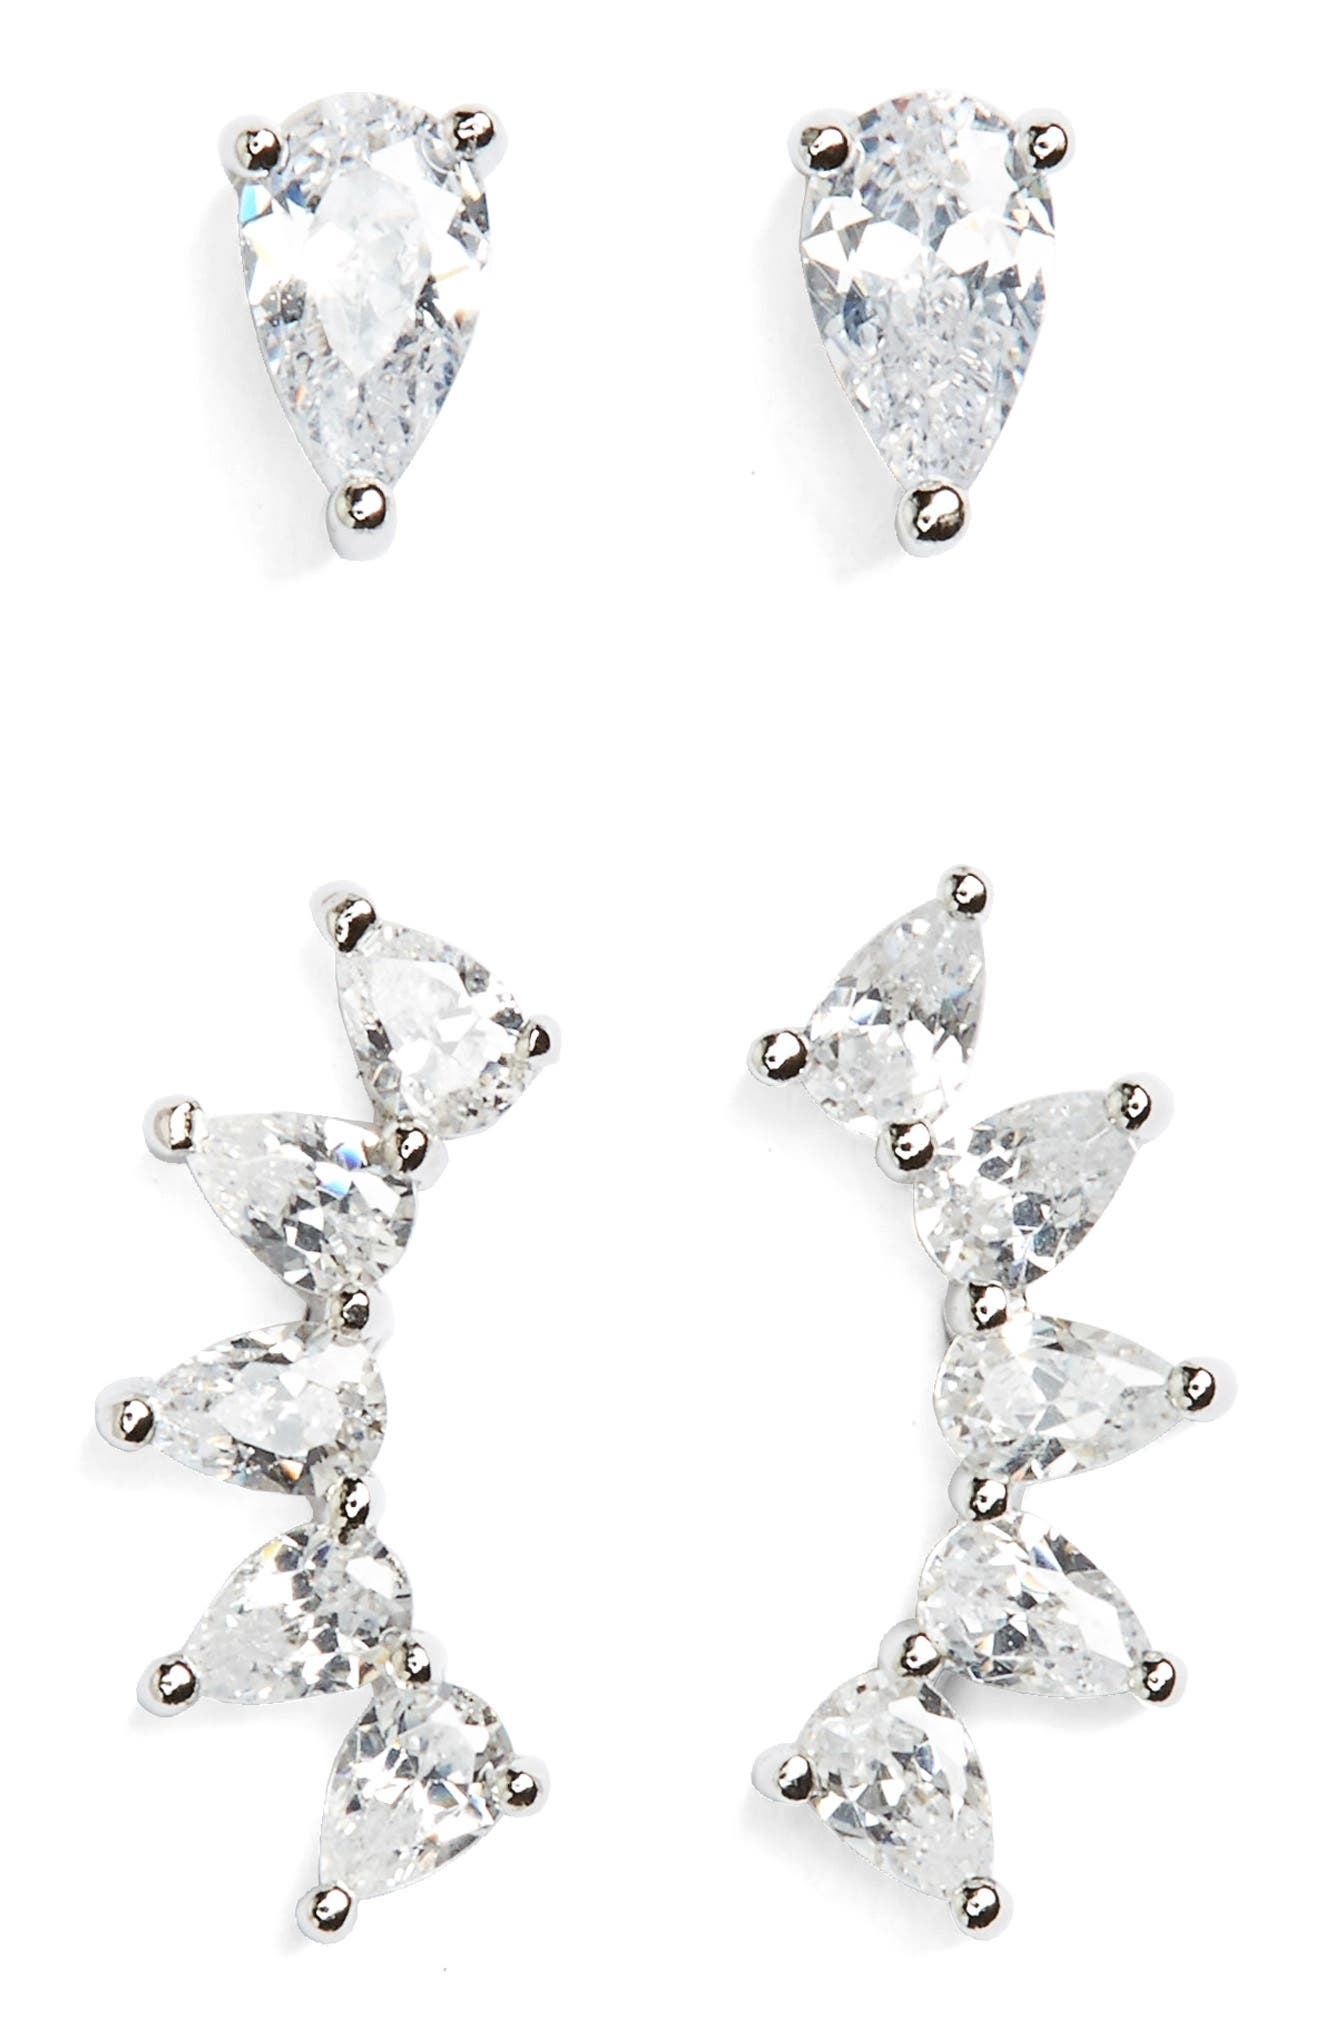 Main Image - Nordstrom Set of 2 Pear Marquise Cubic Zirconia Earrings